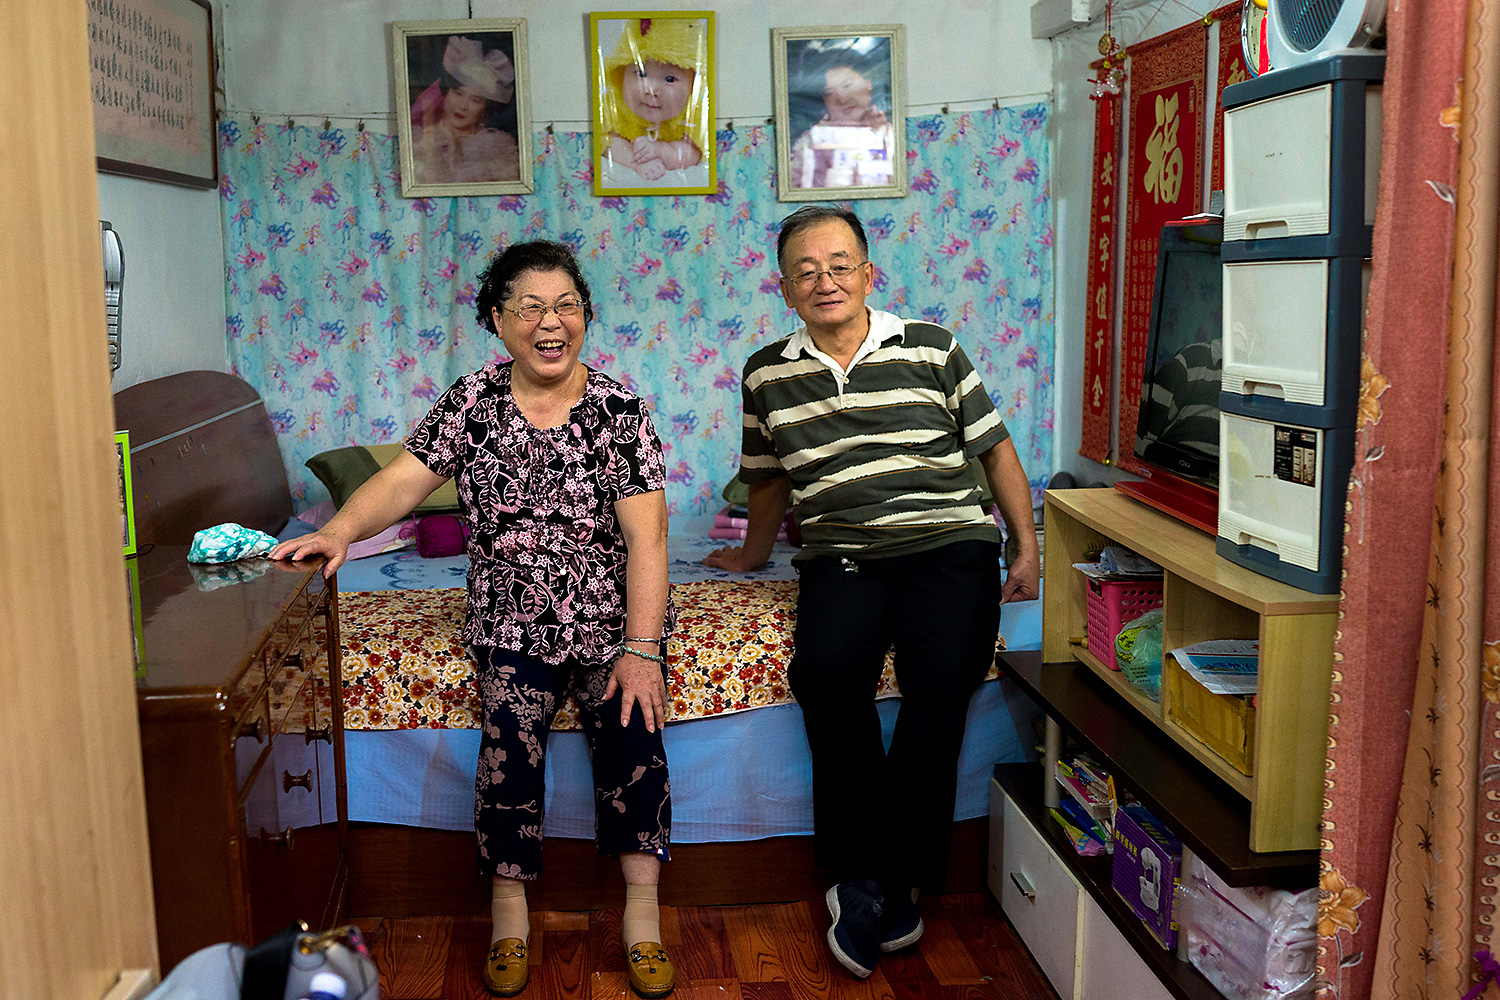 Sun Xuezhong and Yang Peipei in their Shanghai home. Photo by Olivia Martin-McGuire @livmartinmcguire